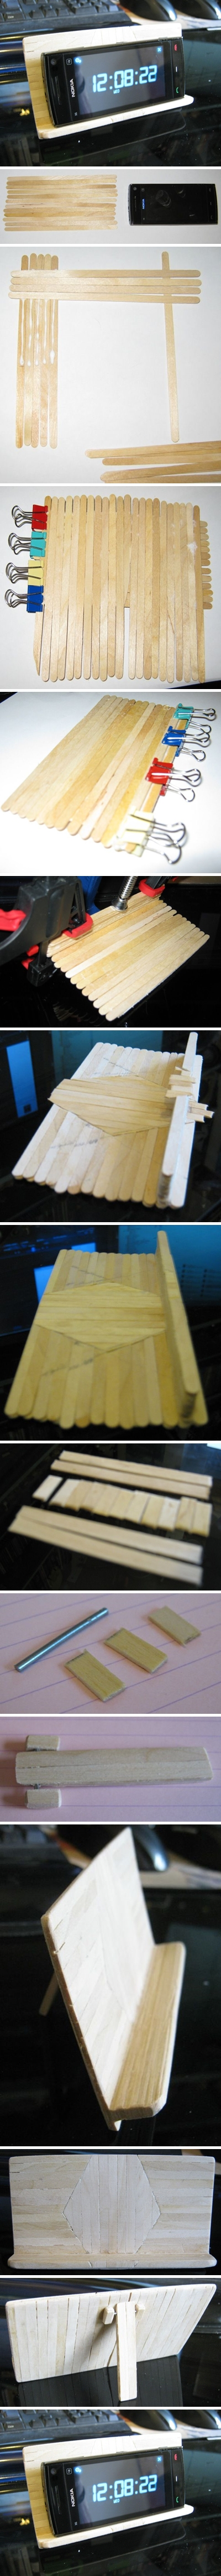 How to make your own cool wooden cell phone stand step by step DIY tutorial instructions